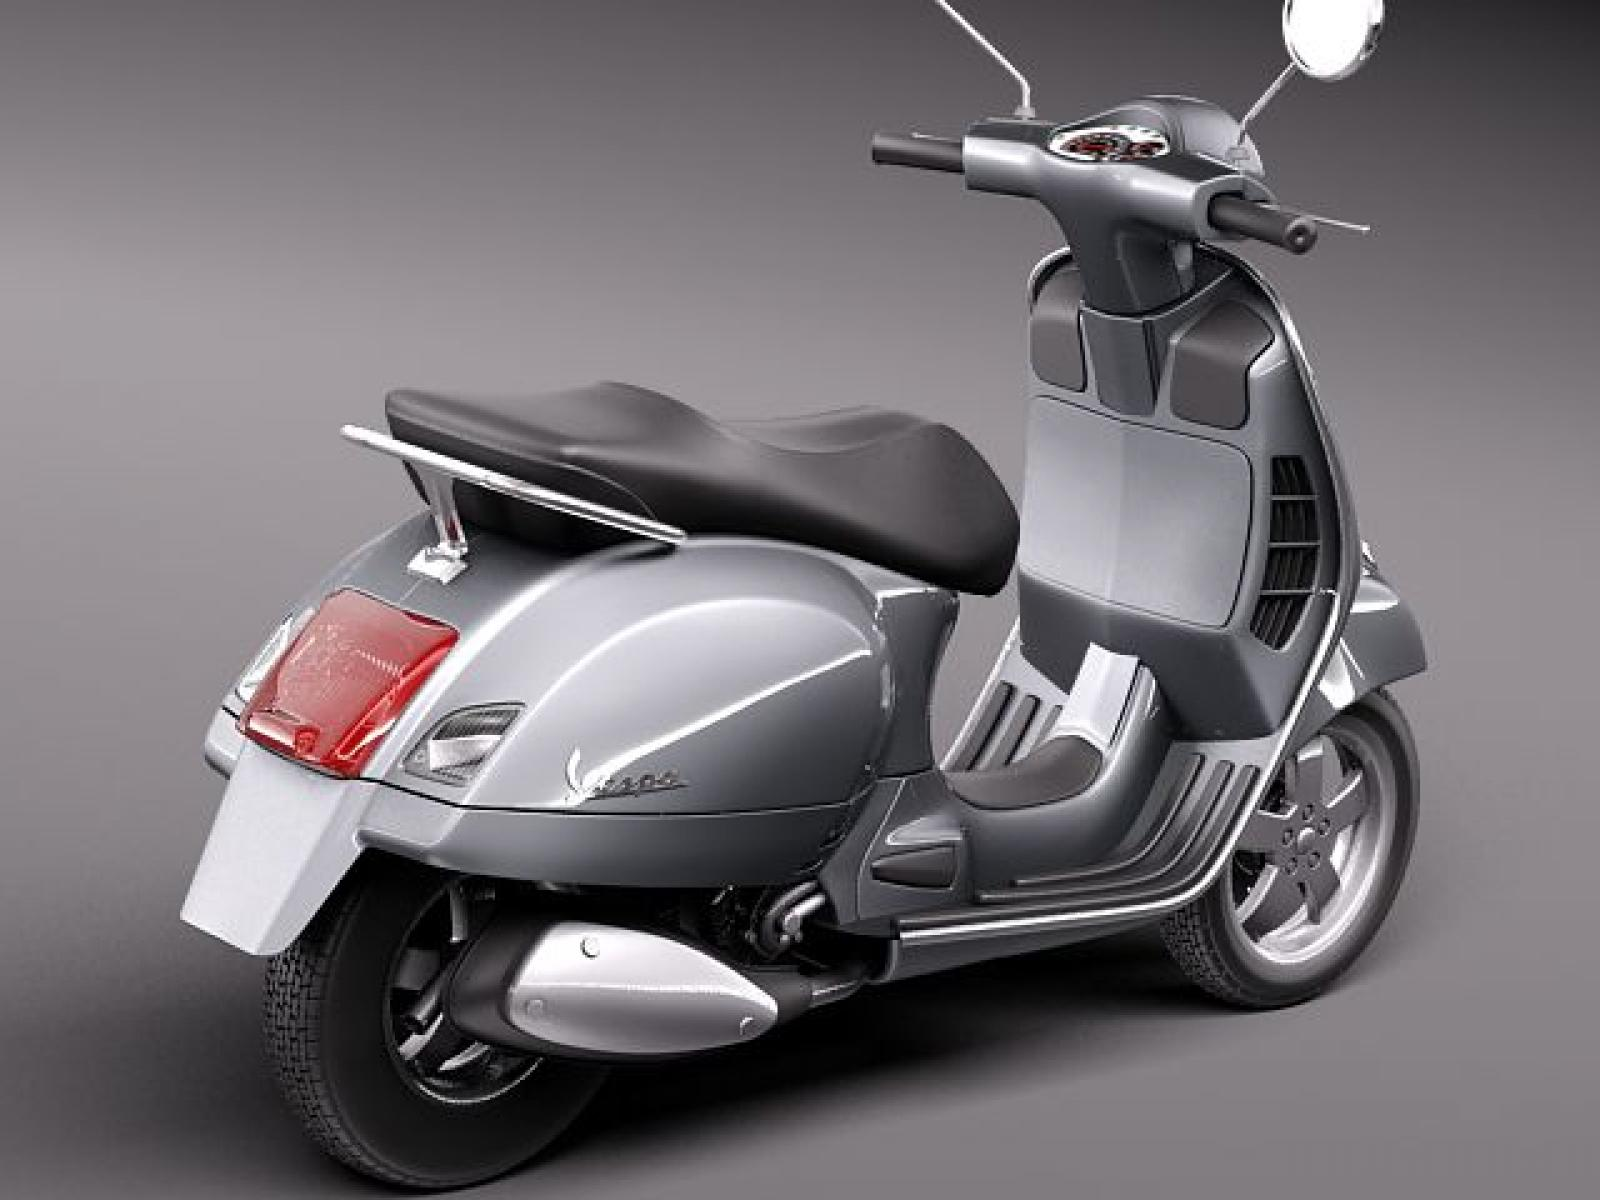 2011 vespa gts 300 super moto zombdrive com. Black Bedroom Furniture Sets. Home Design Ideas